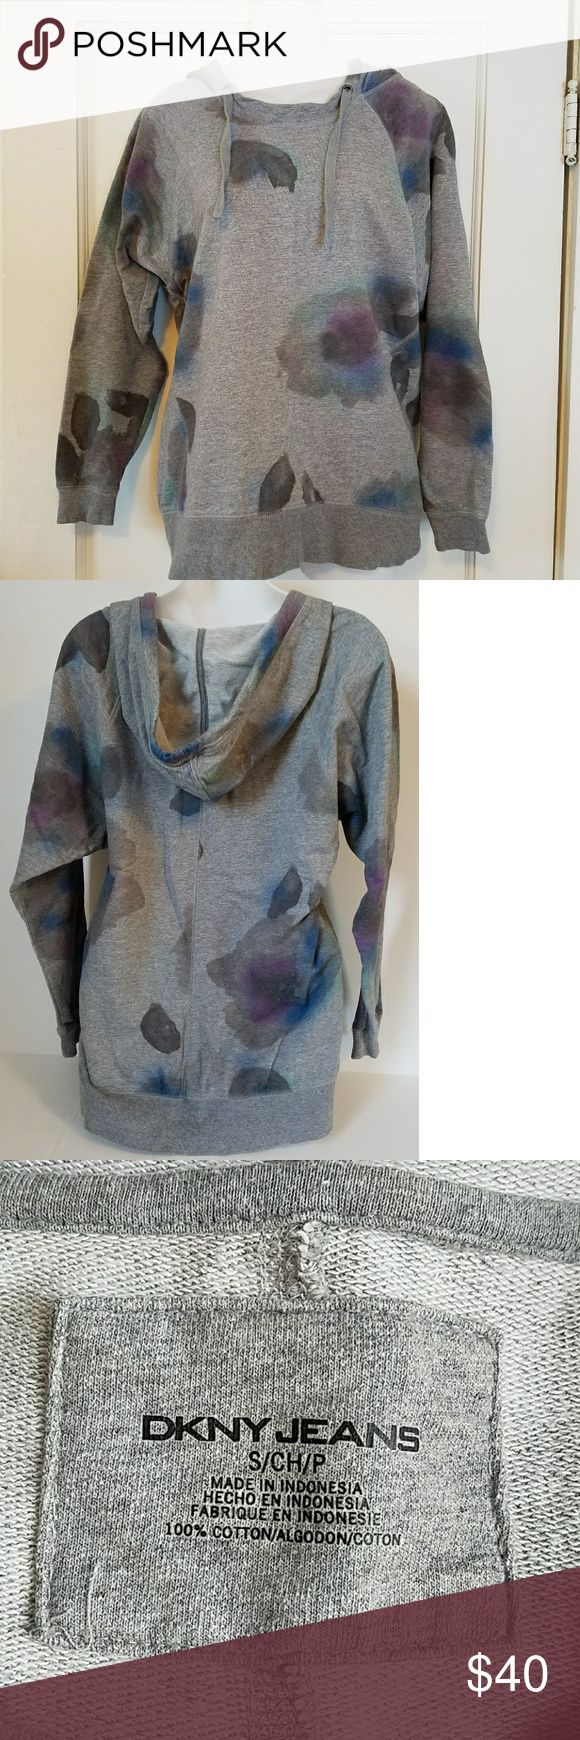 DKNY 100% cotton gray floral hoodie sz SM DKNY 100% cotton floral hoodie. Excellent used condition! No holes, stains or wash wear.  - gray with water color floral design - loose fitting - machine washable - 100% cotton - size Small  I love offers! Feel free to submit an offer through the offer button. DKNY Tops Sweatshirts & Hoodies